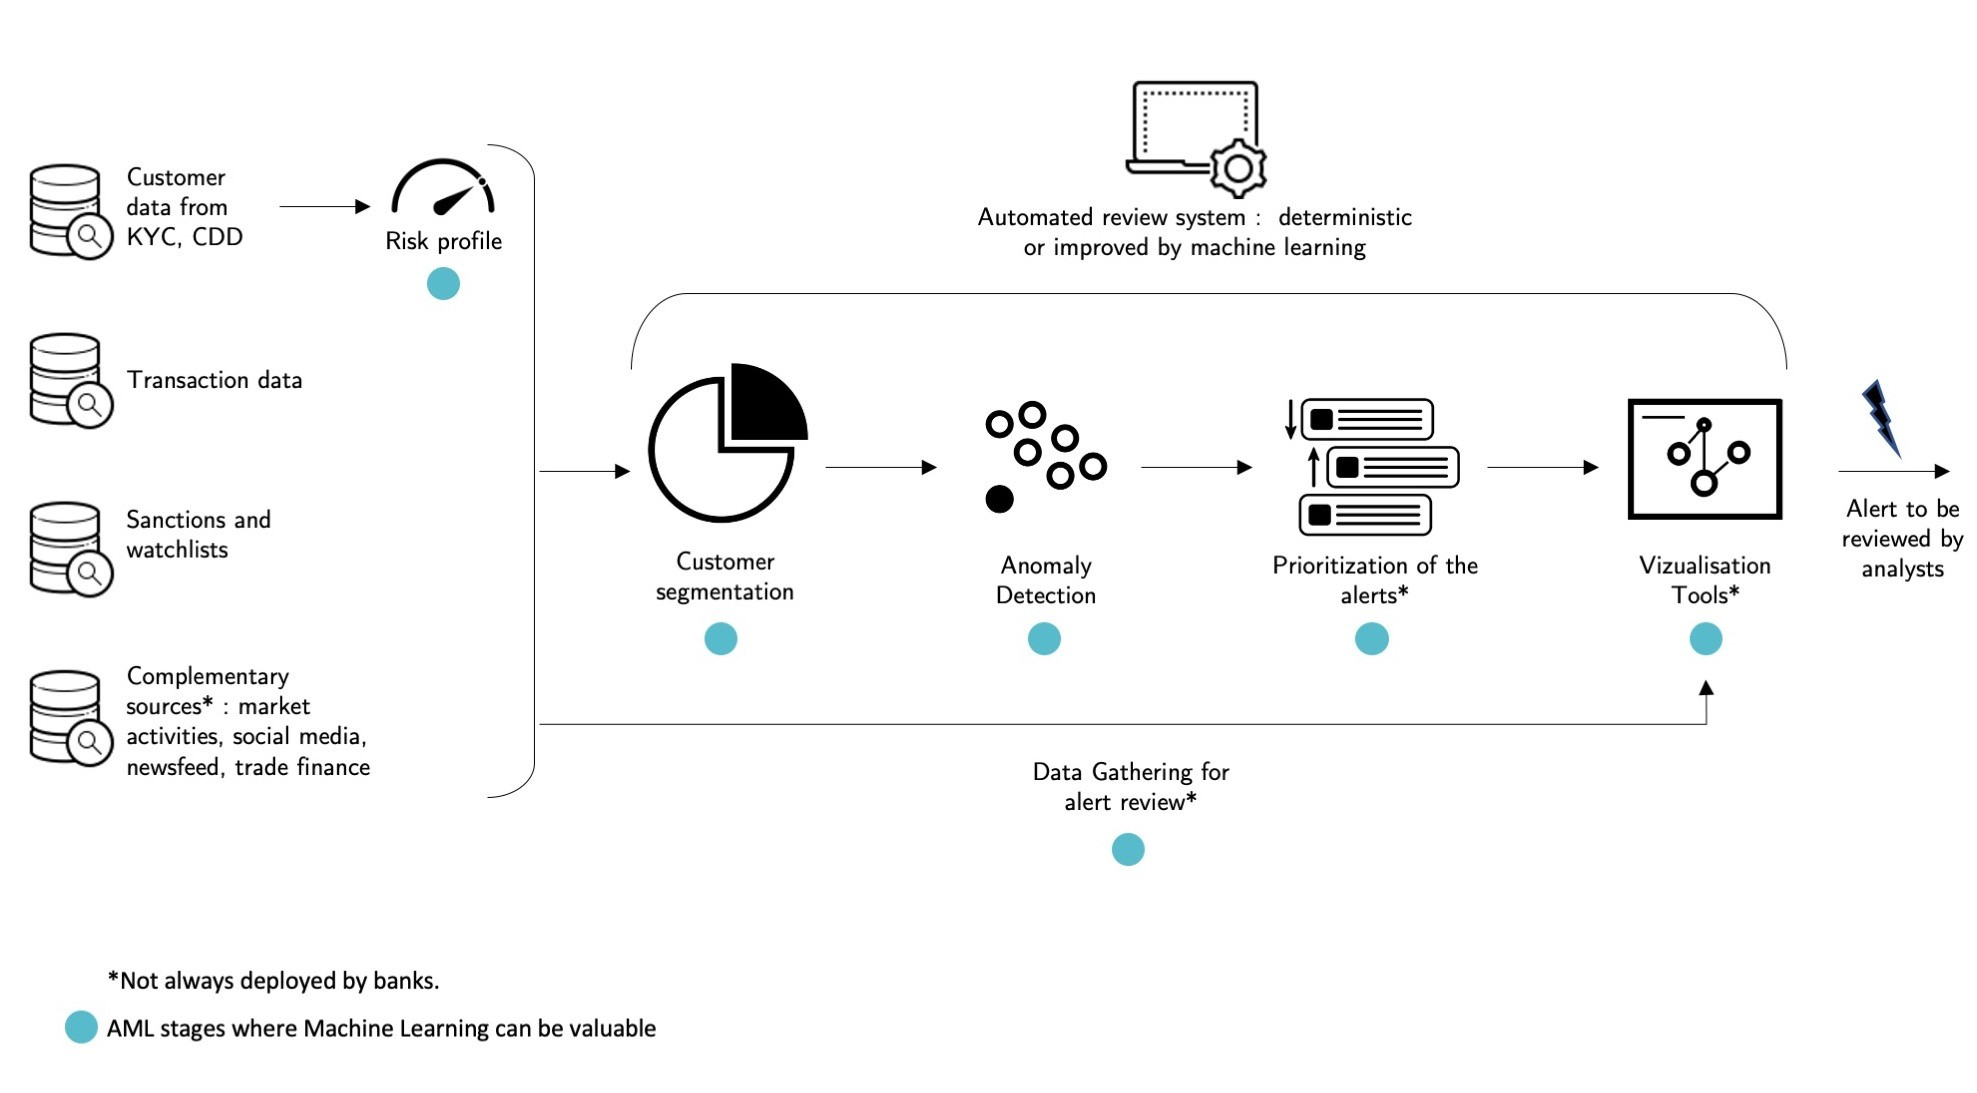 Figure 2: Diagram representing typical tasks performed by an automated review system for AML